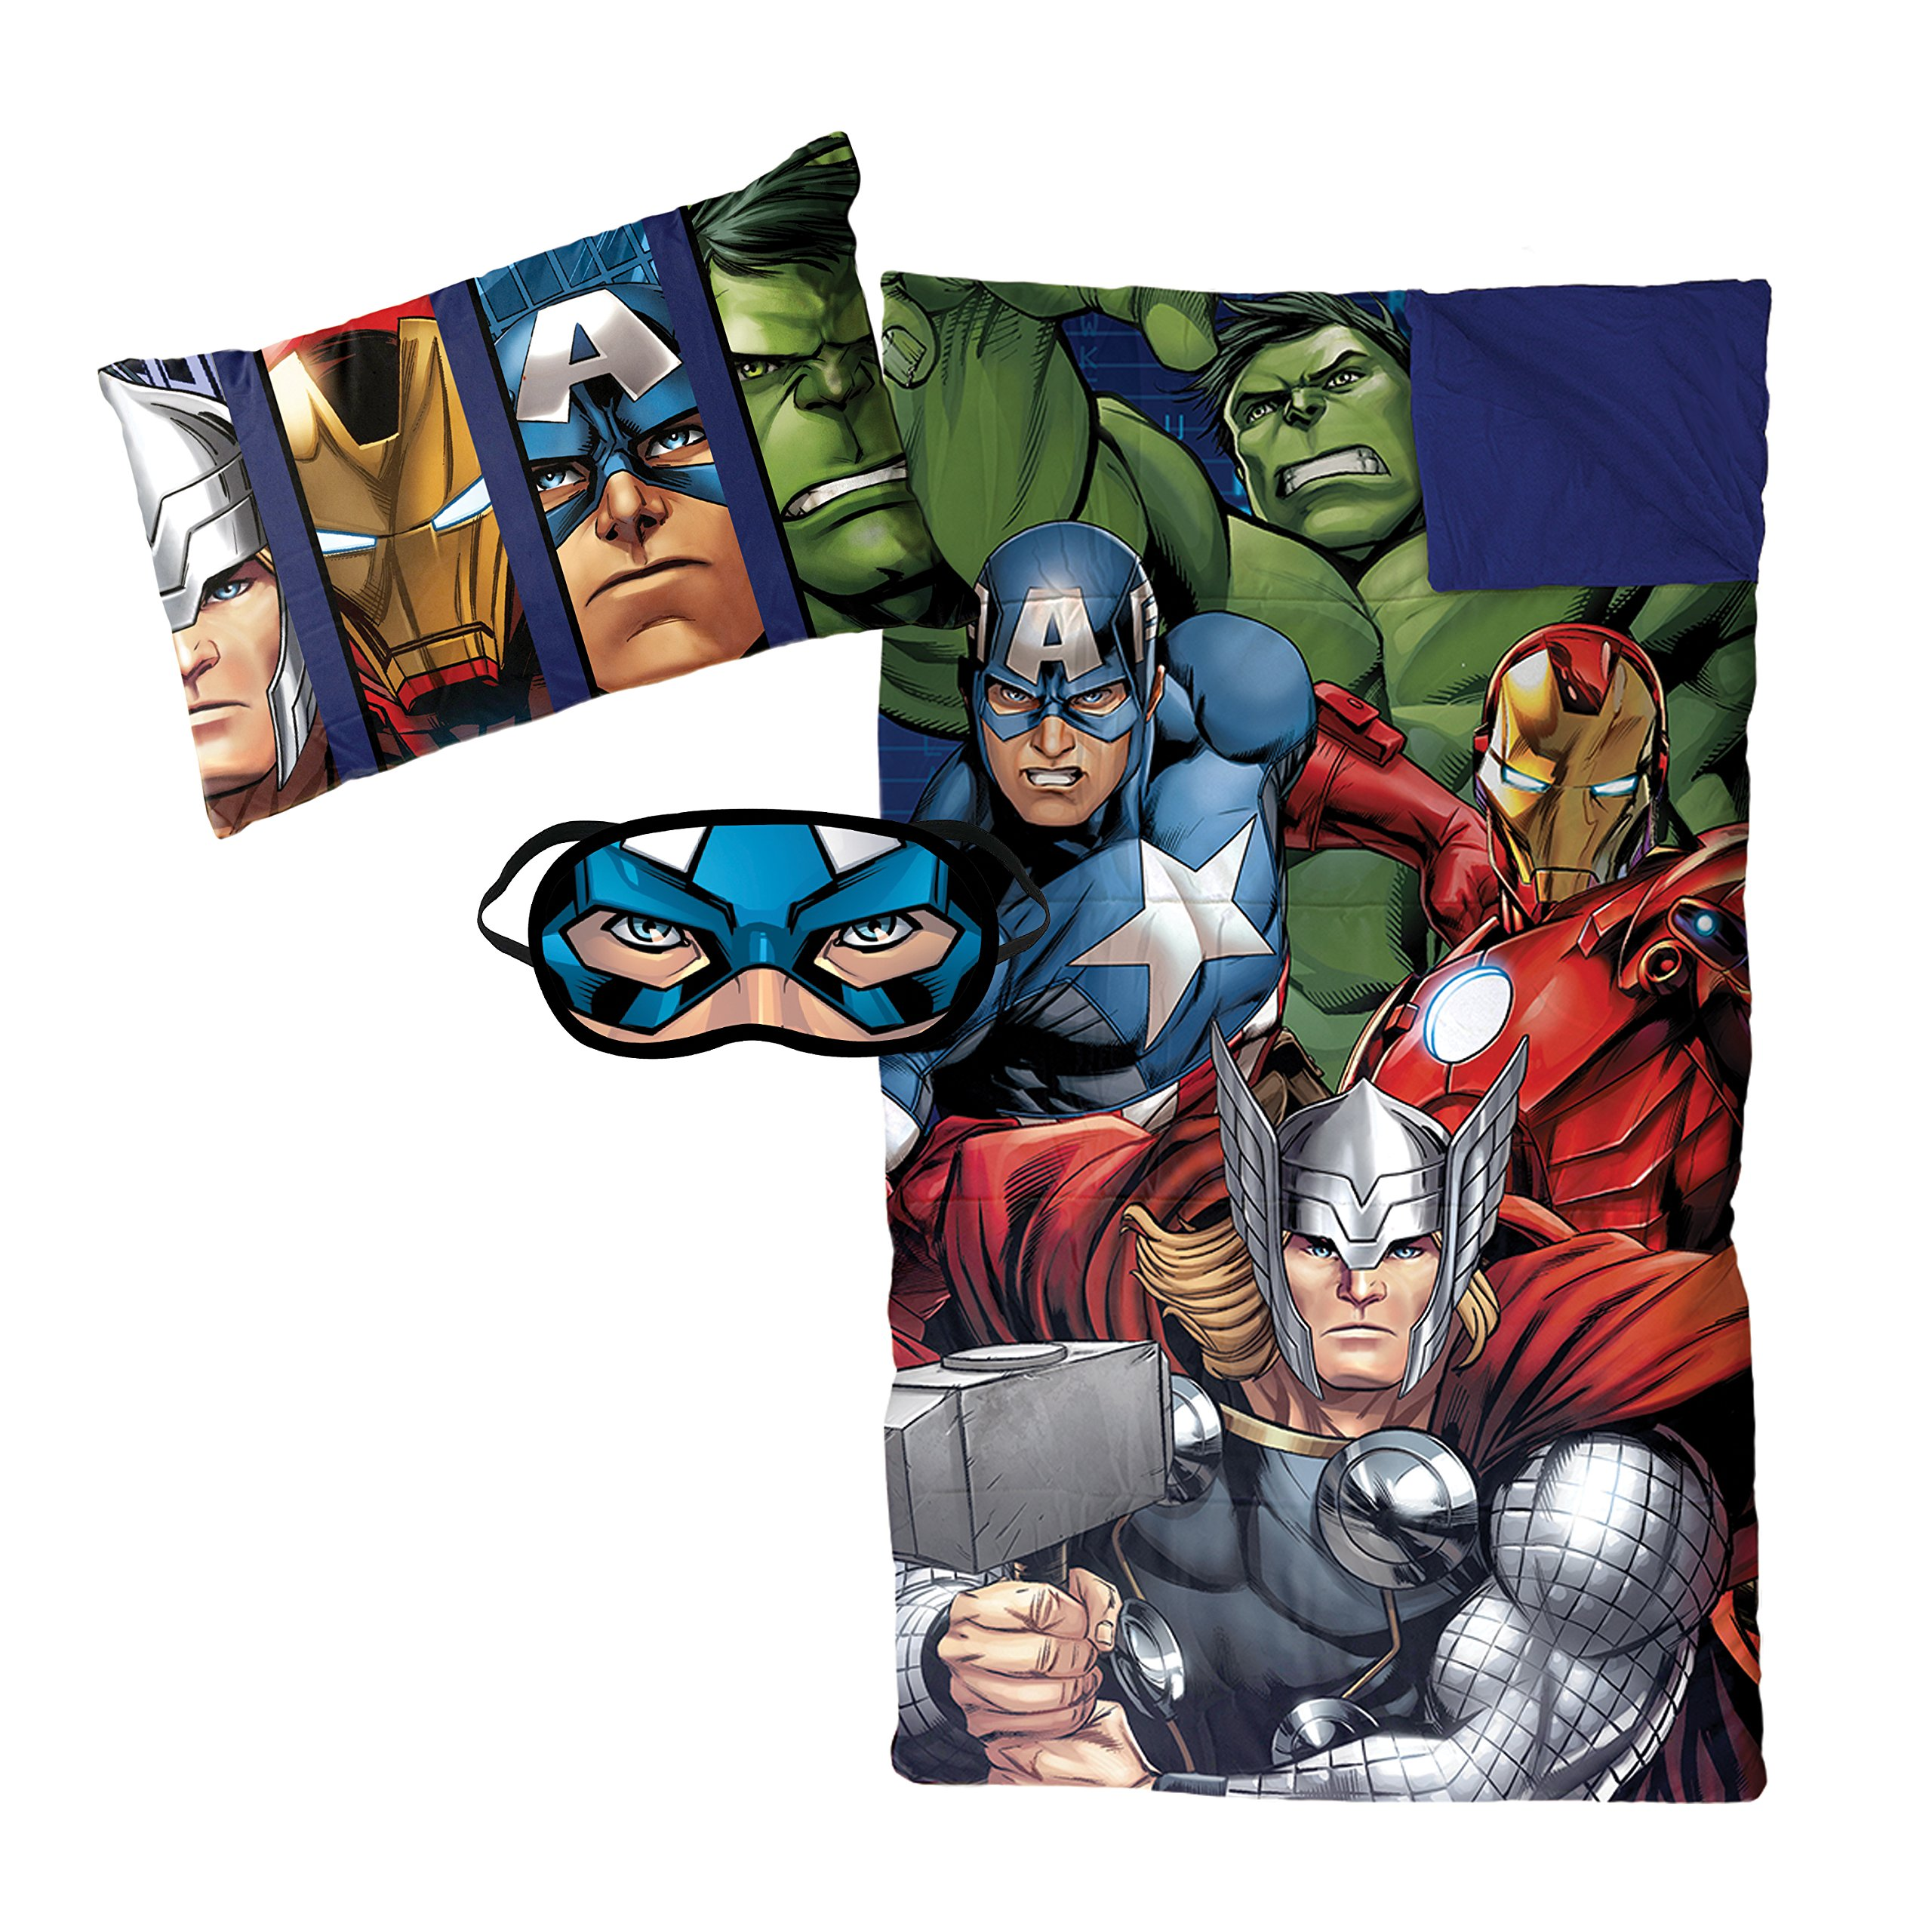 Jay Franco Marvel Avengers Assemble 3 Piece Plush Sleepover Set by Jay Franco